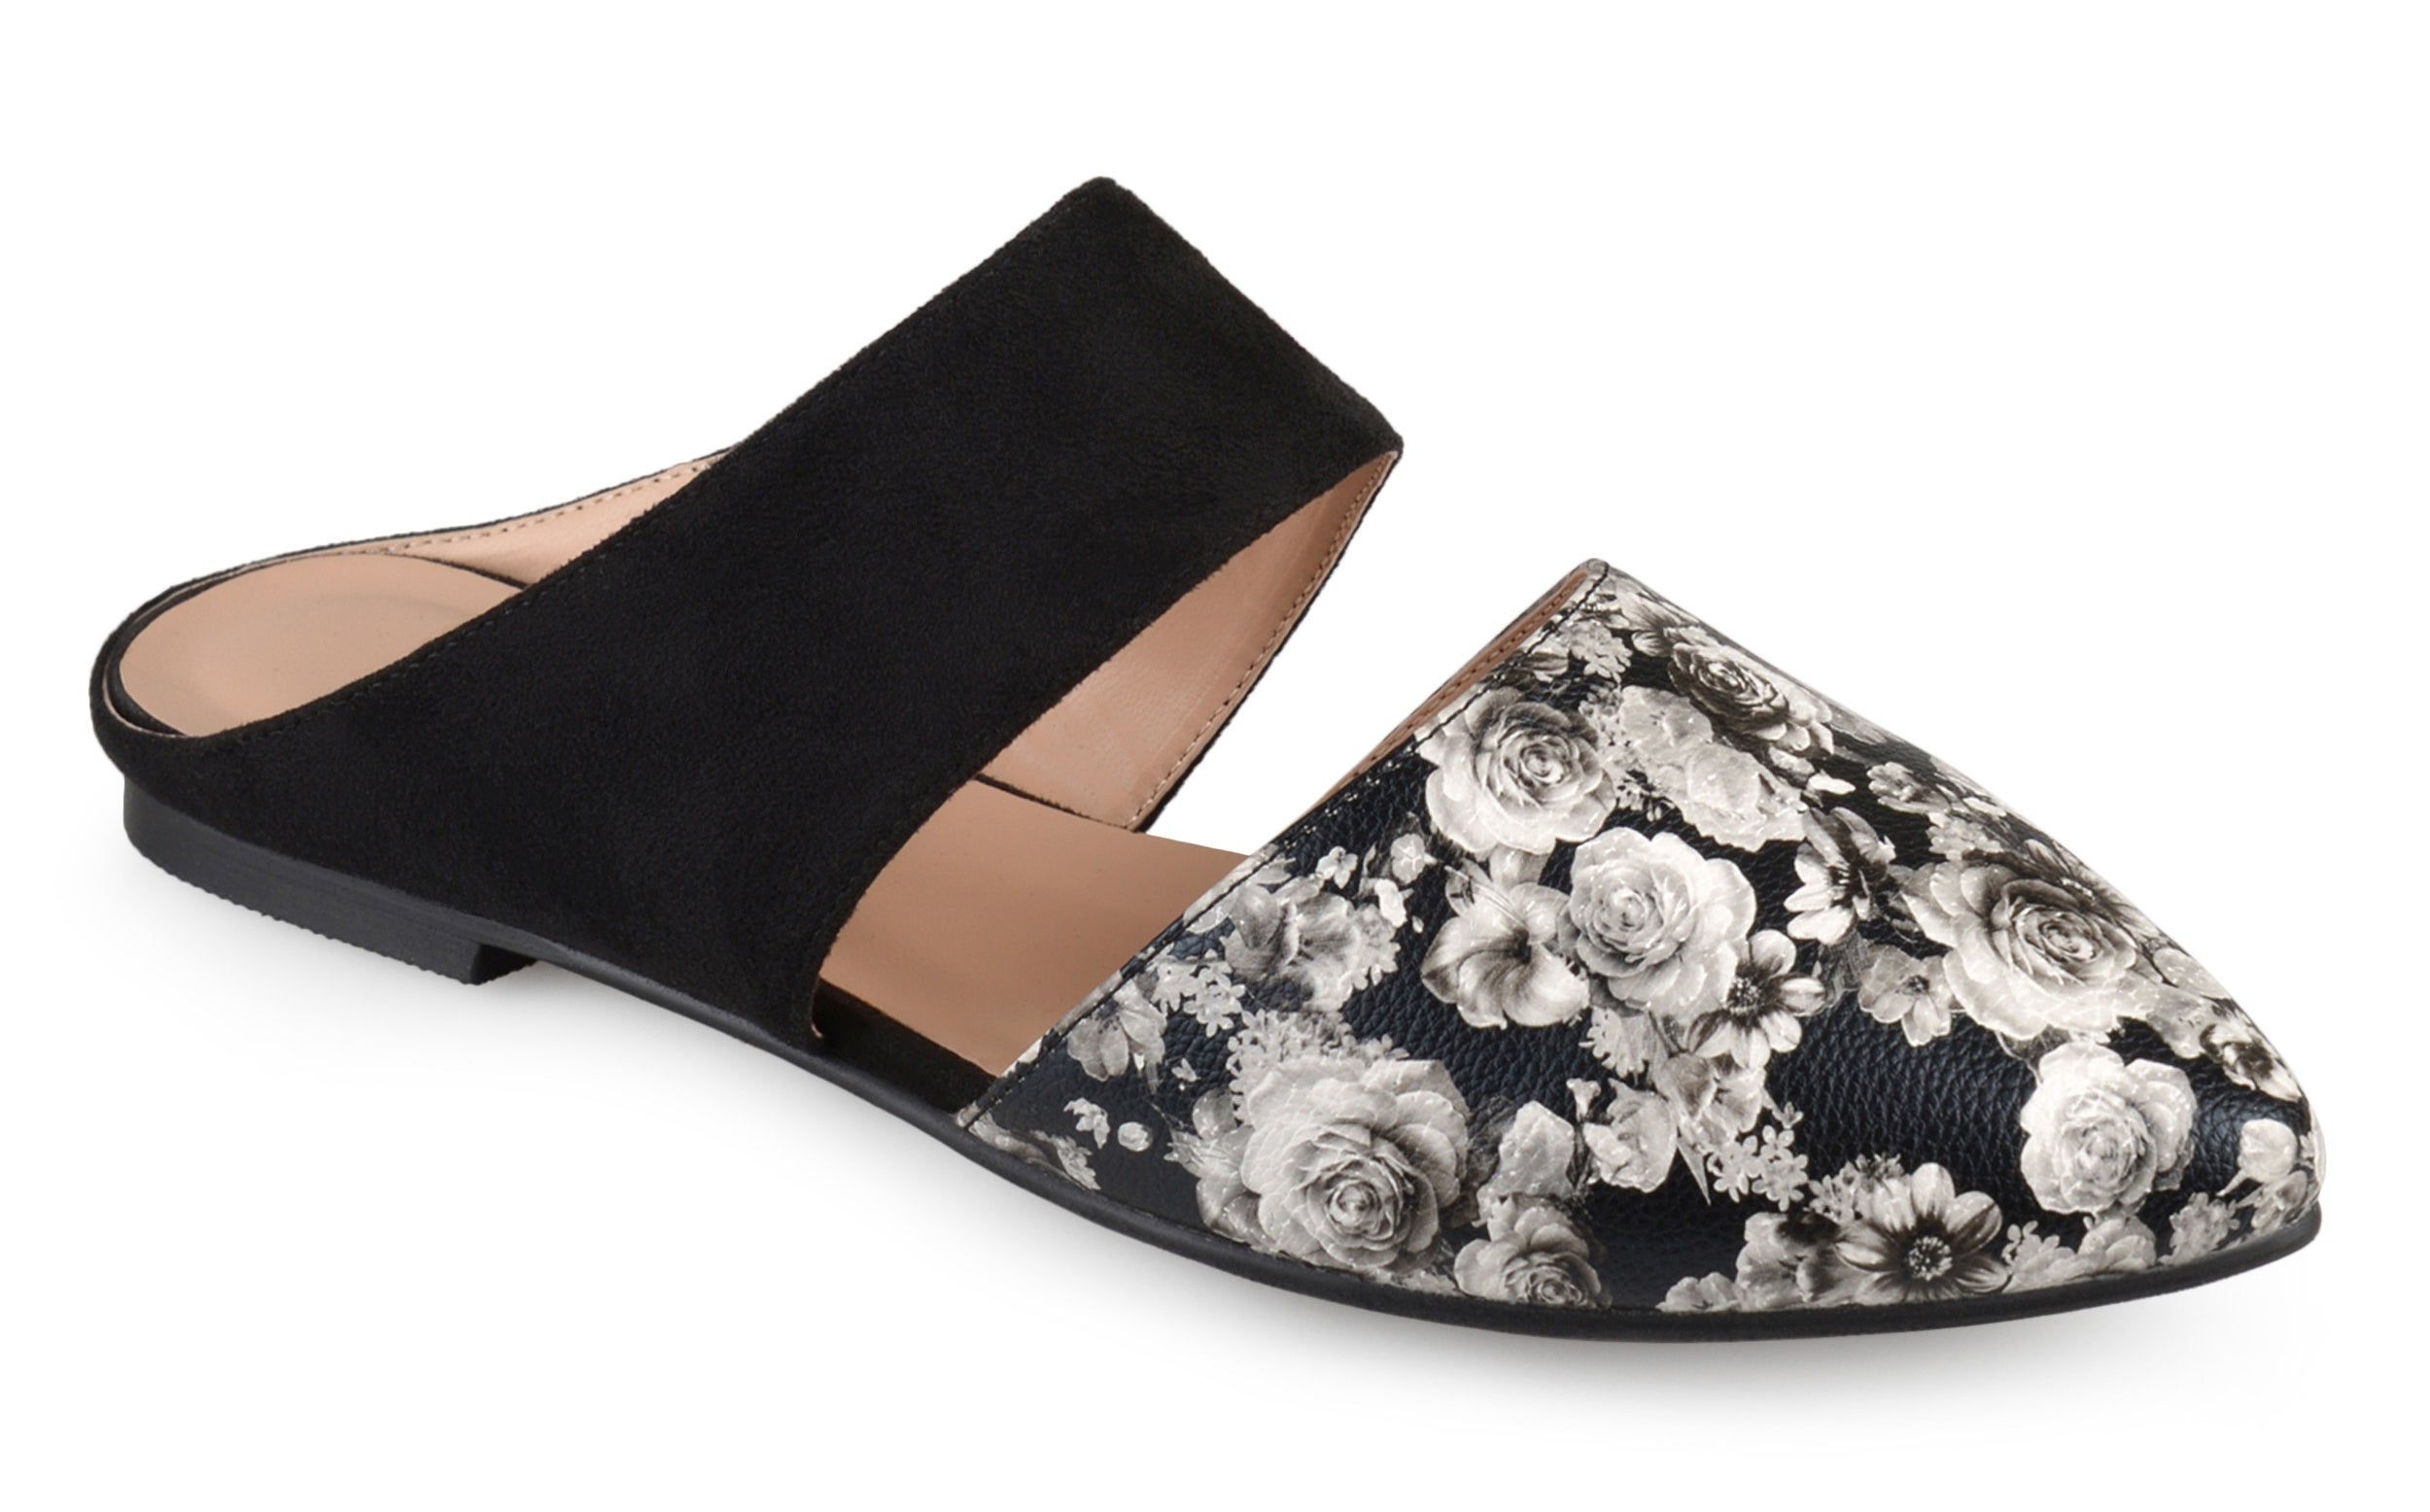 Faux suede and faux leather dark floral printed mules with cutout